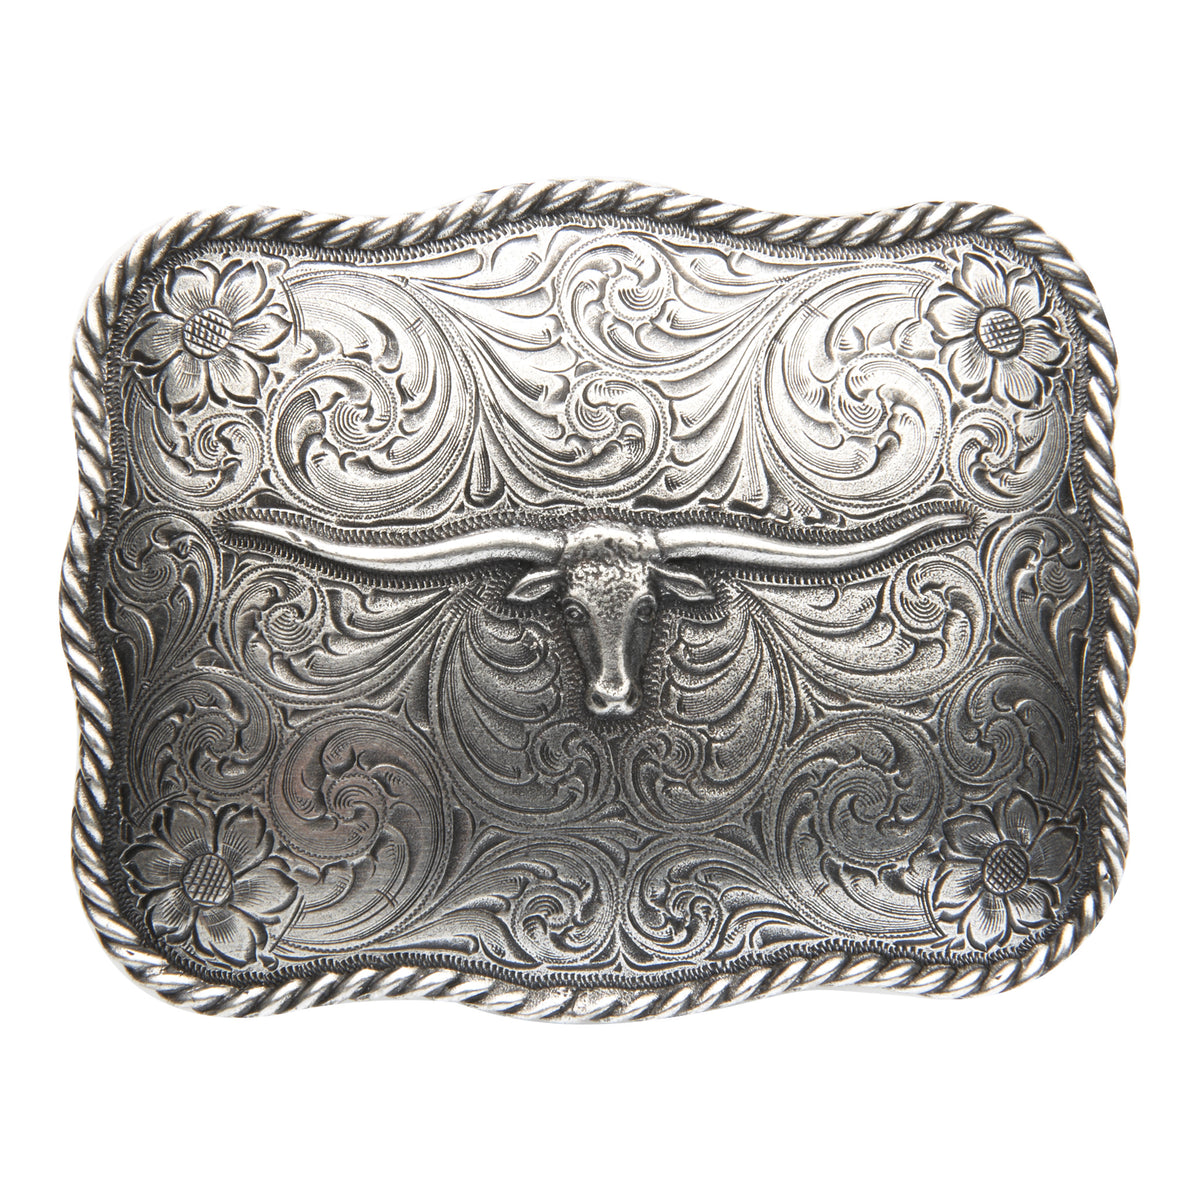 Scalloped Longhorn Buckle